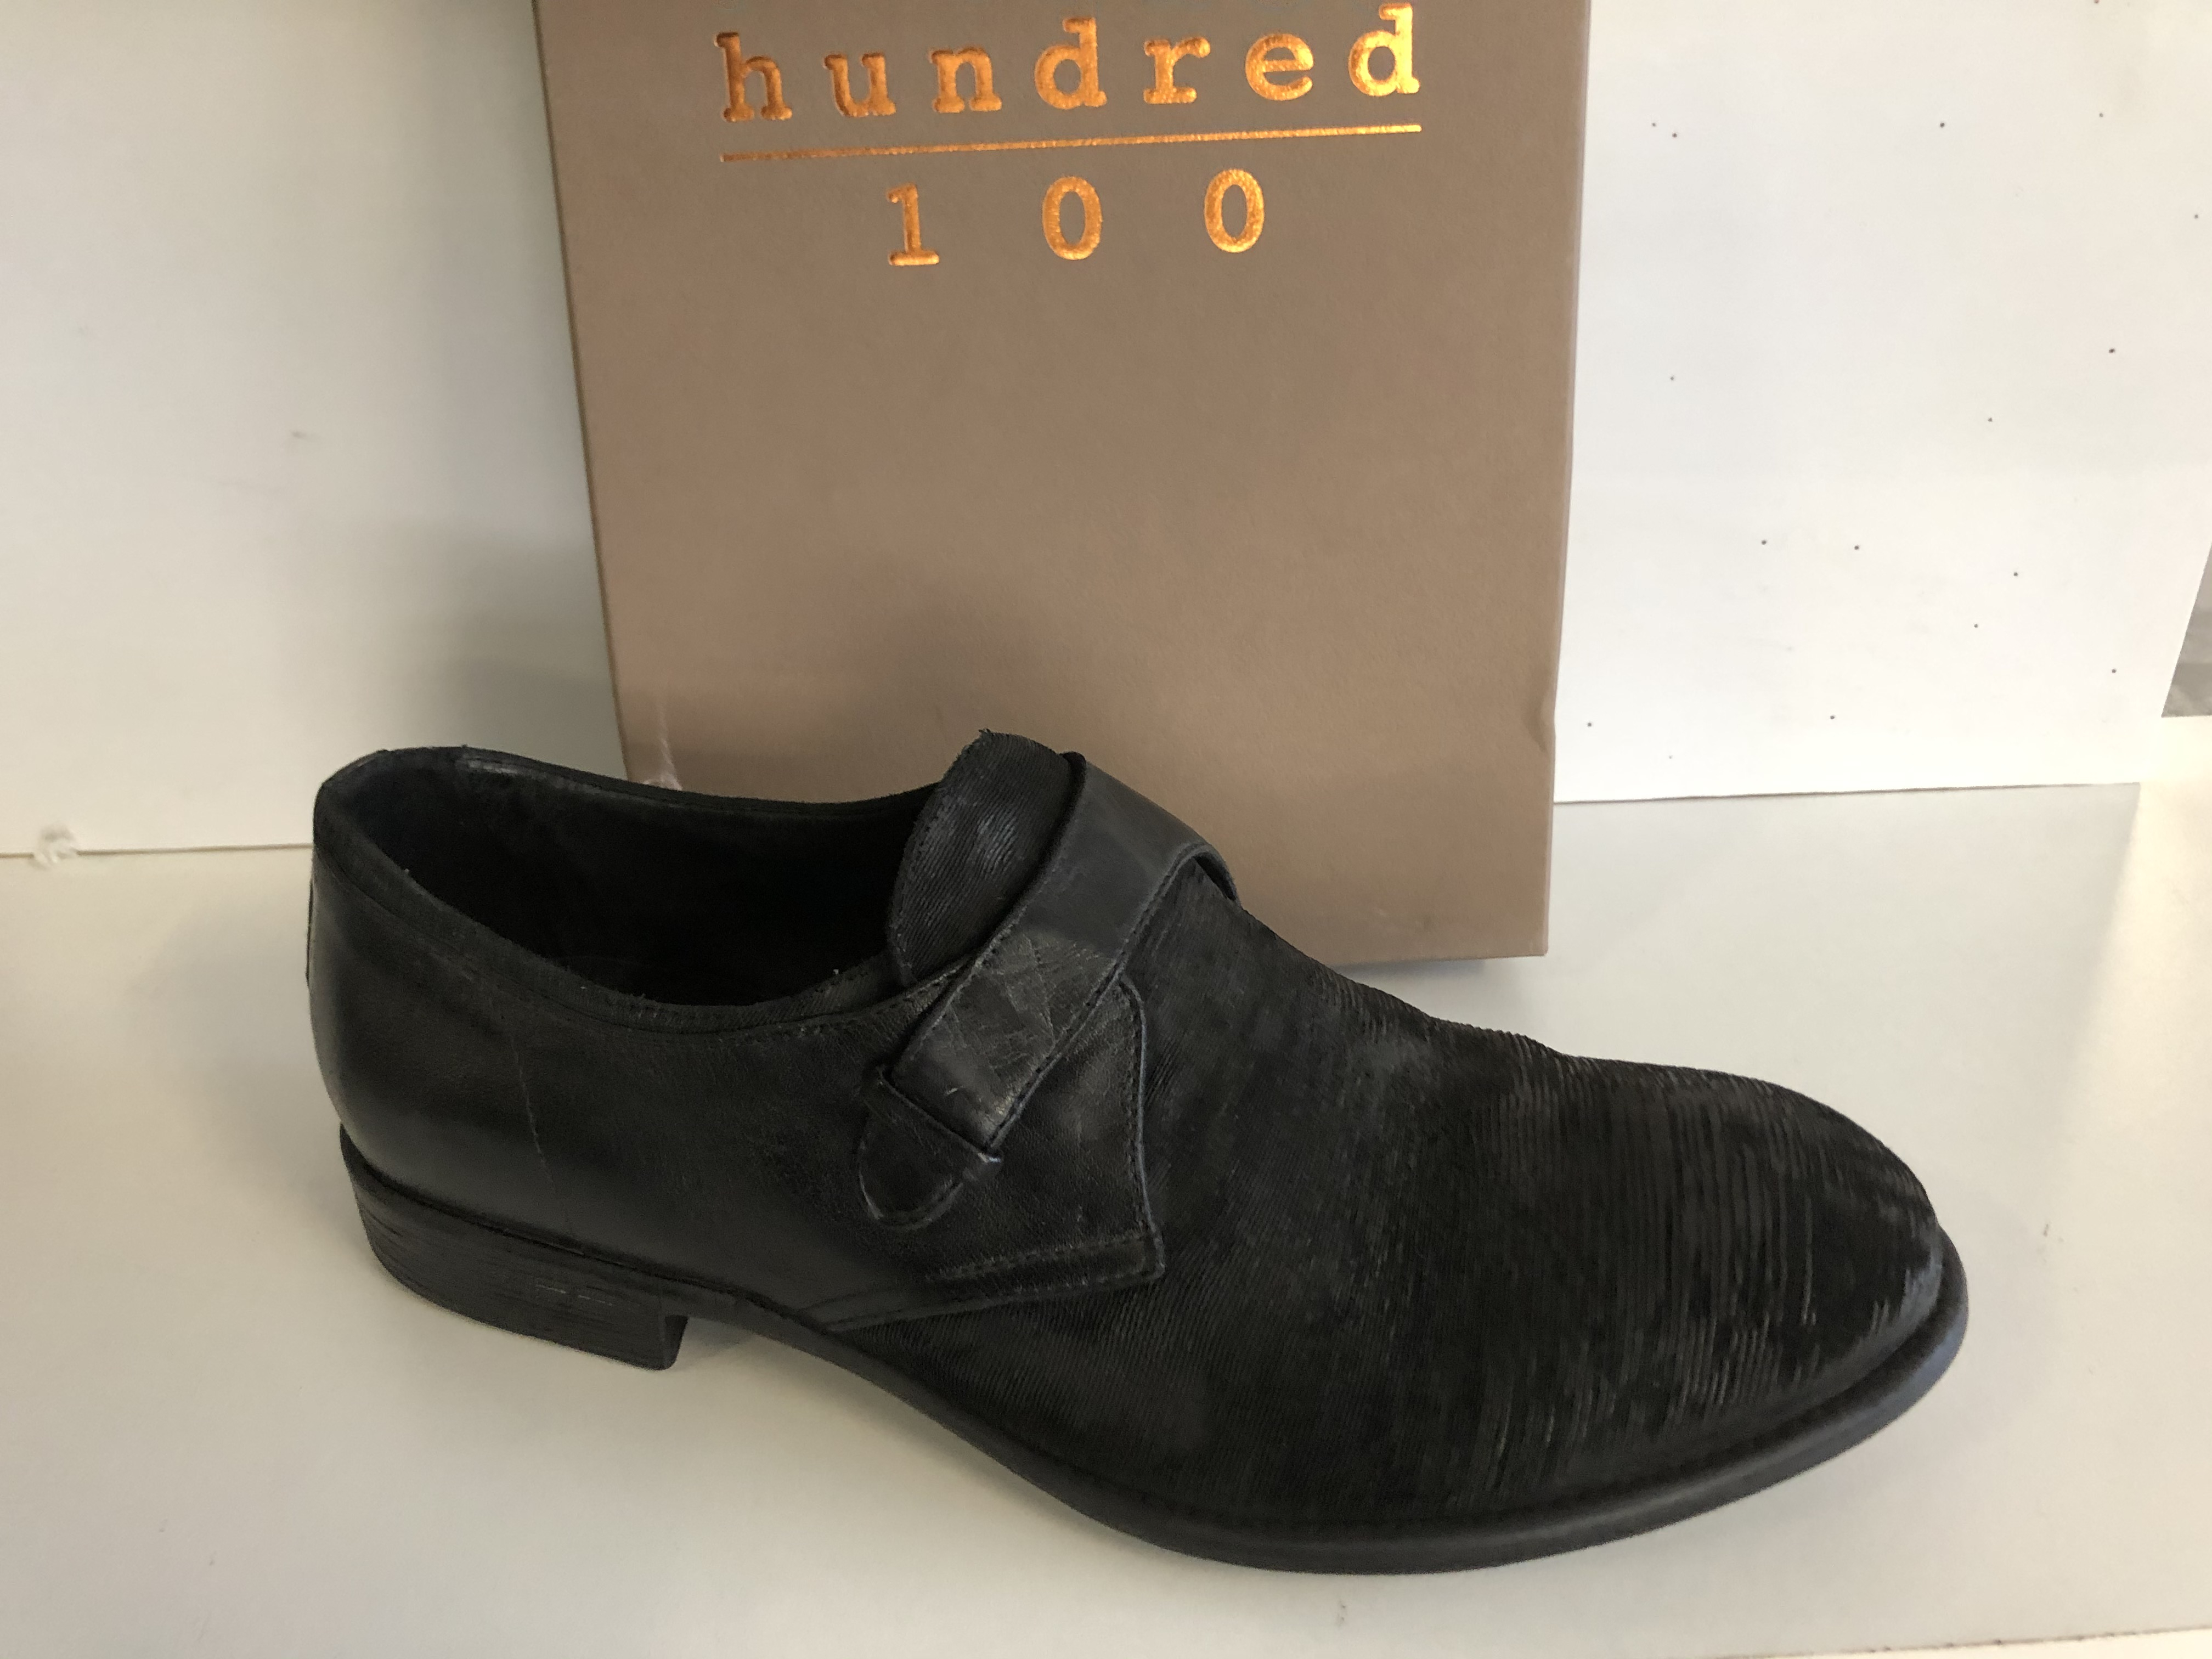 Hundred 100 Scarpa Uomo Derby Monk Strap Boleto T.Capo/Nero M087-18